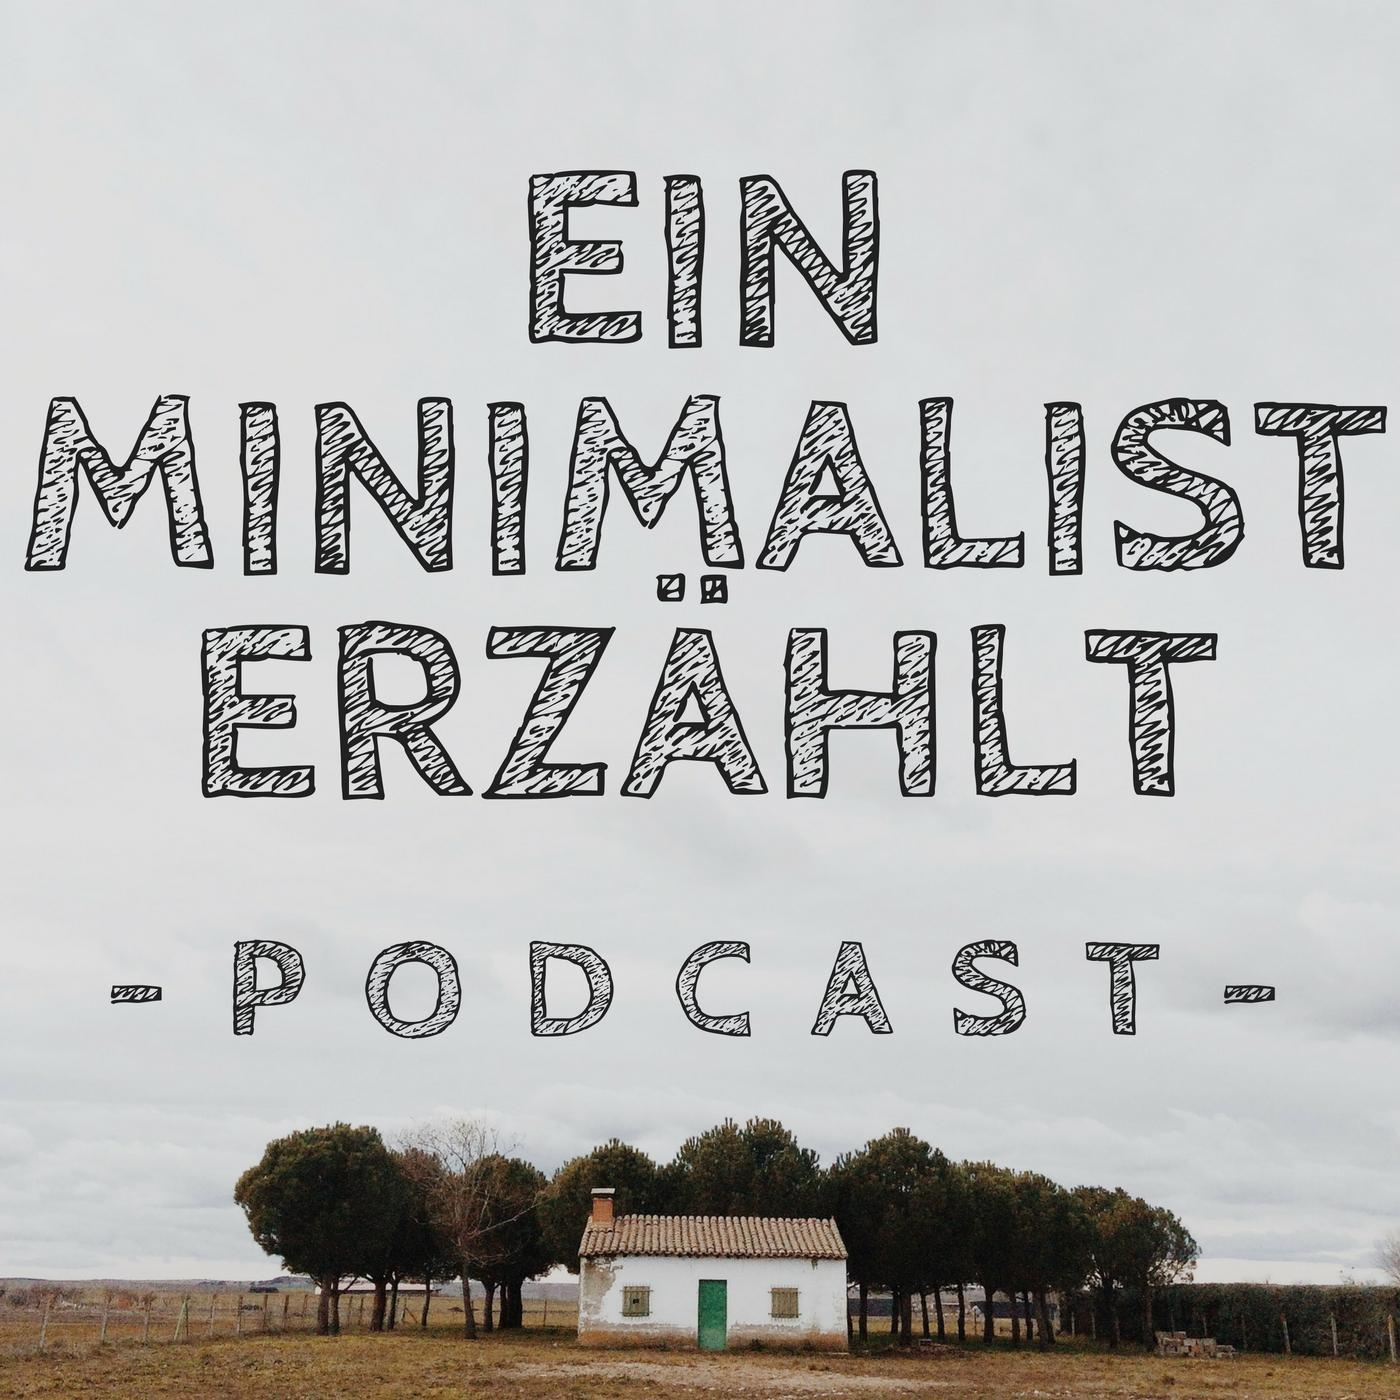 Listen to EME008: Knochenfeile